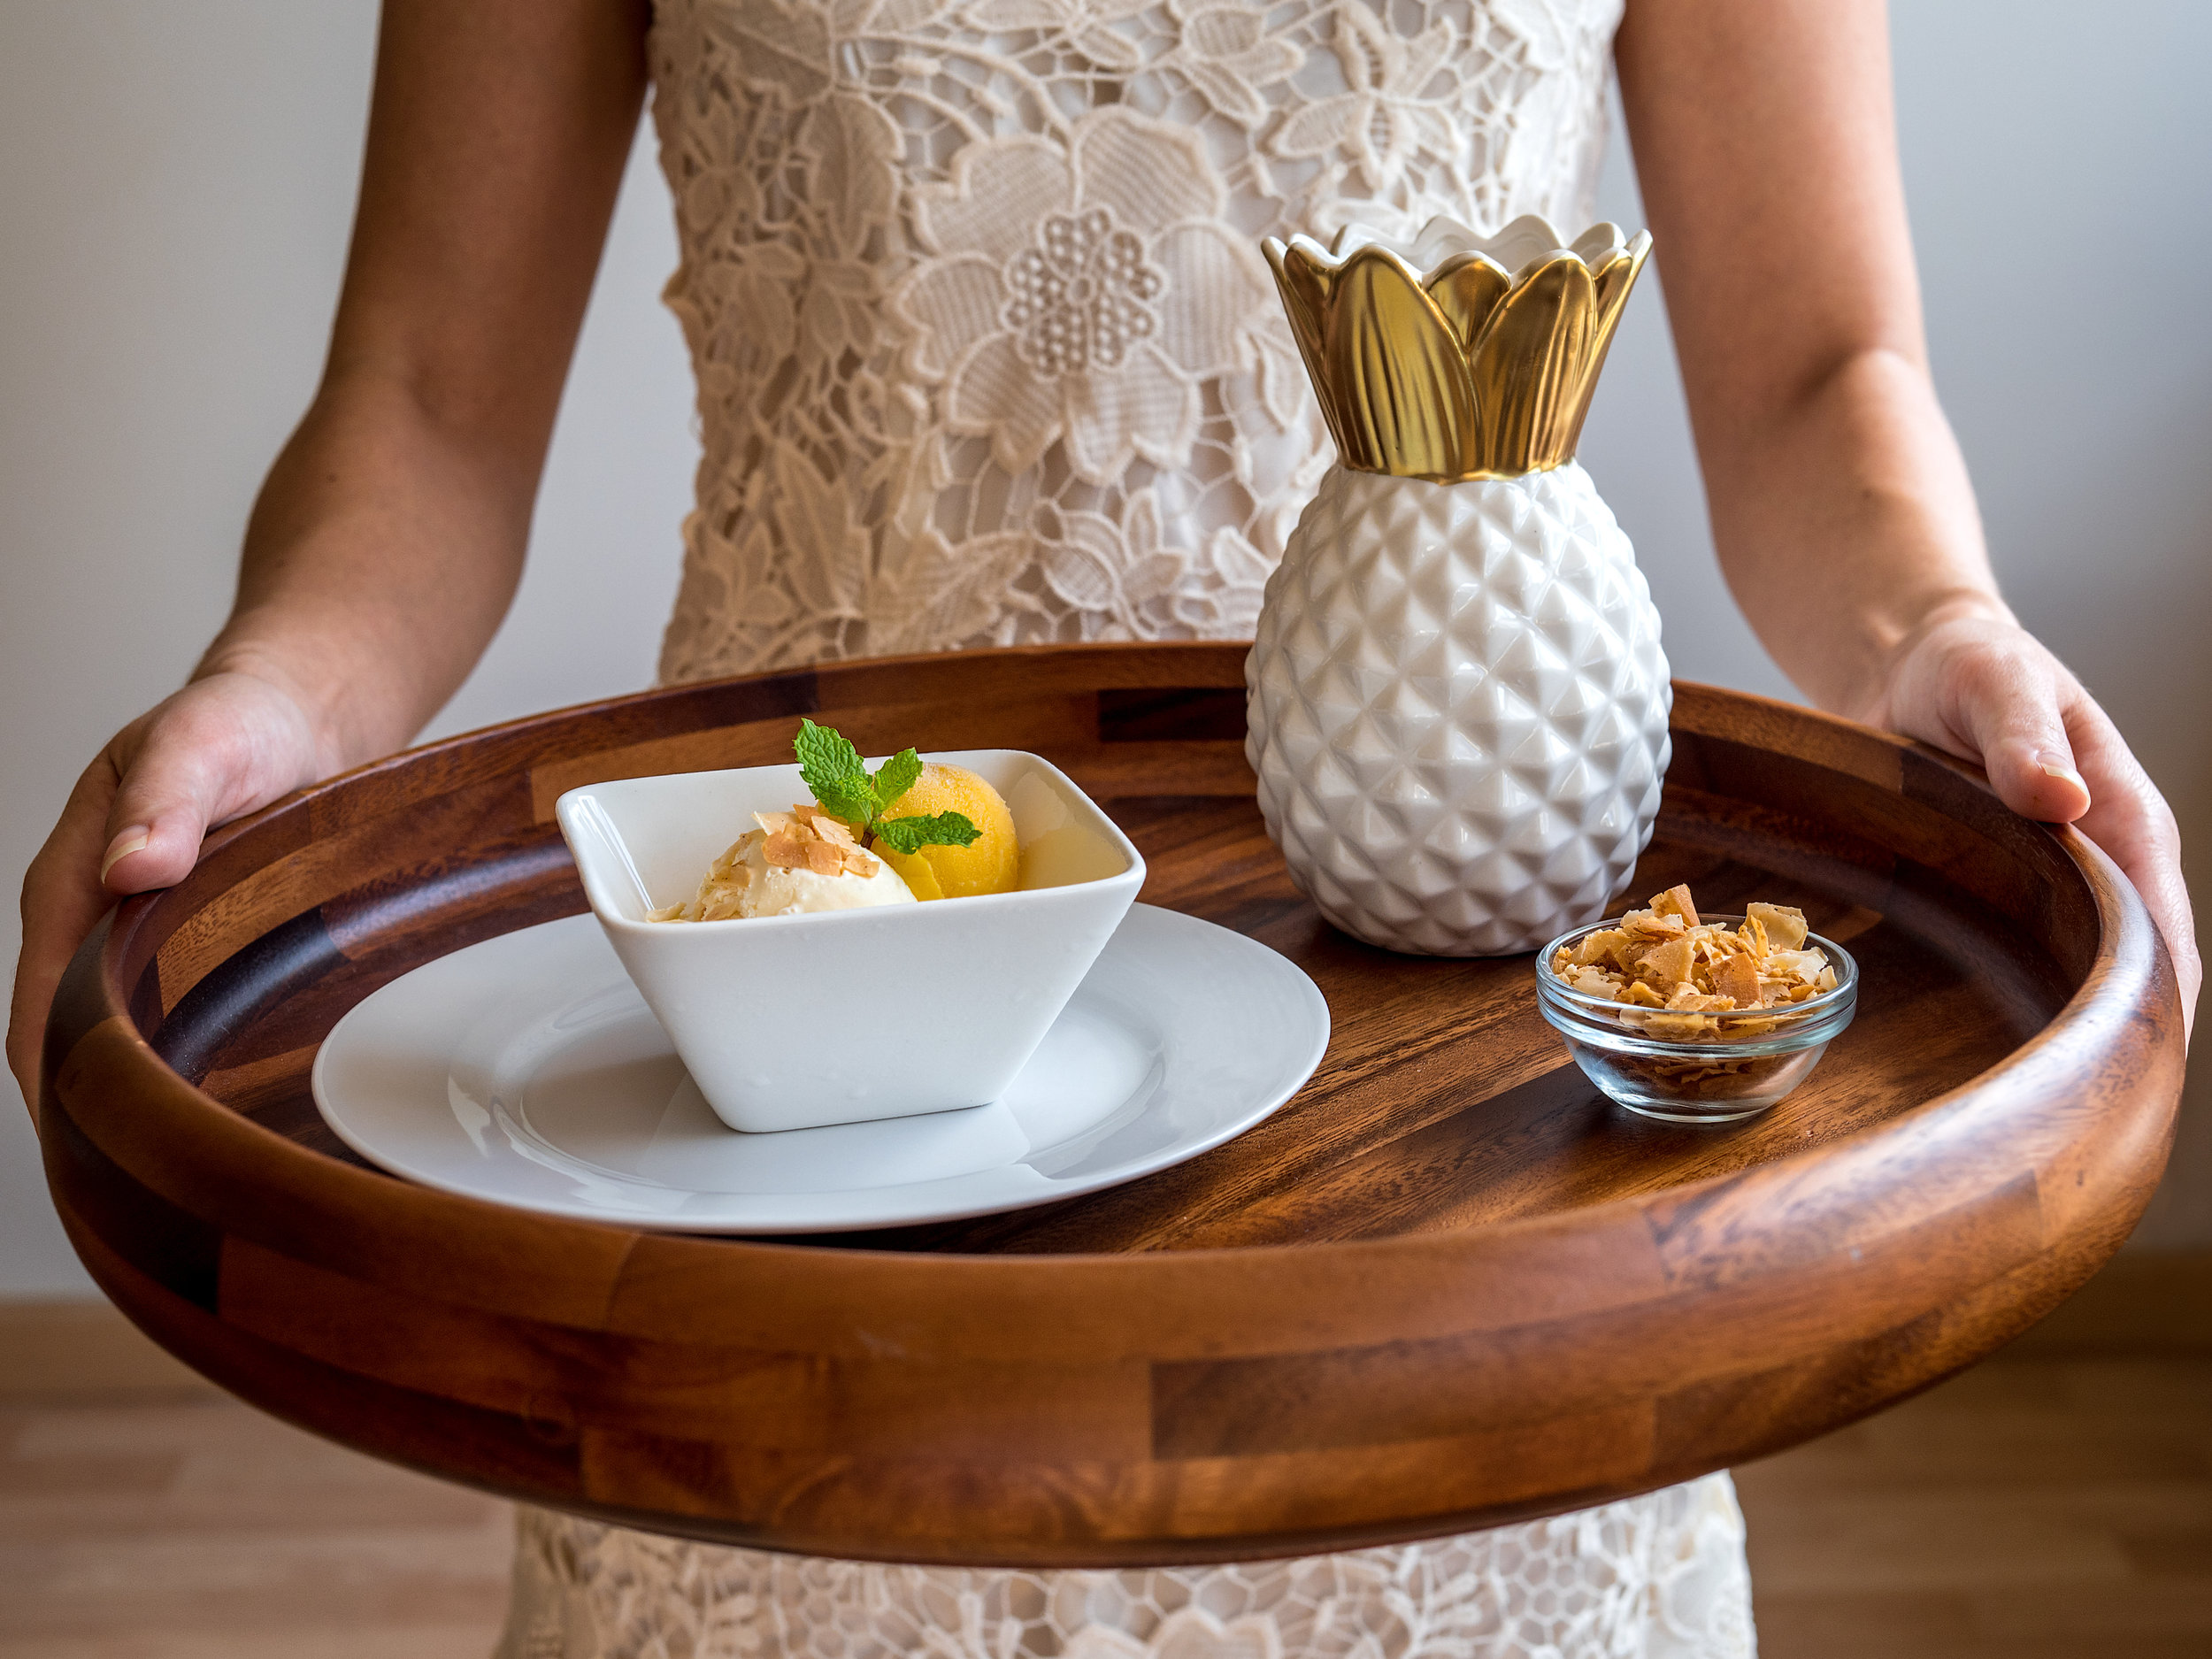 A Royal Hawaiian Mother's Day - Toasted Coconut Ice Cream and Mango Sorbet